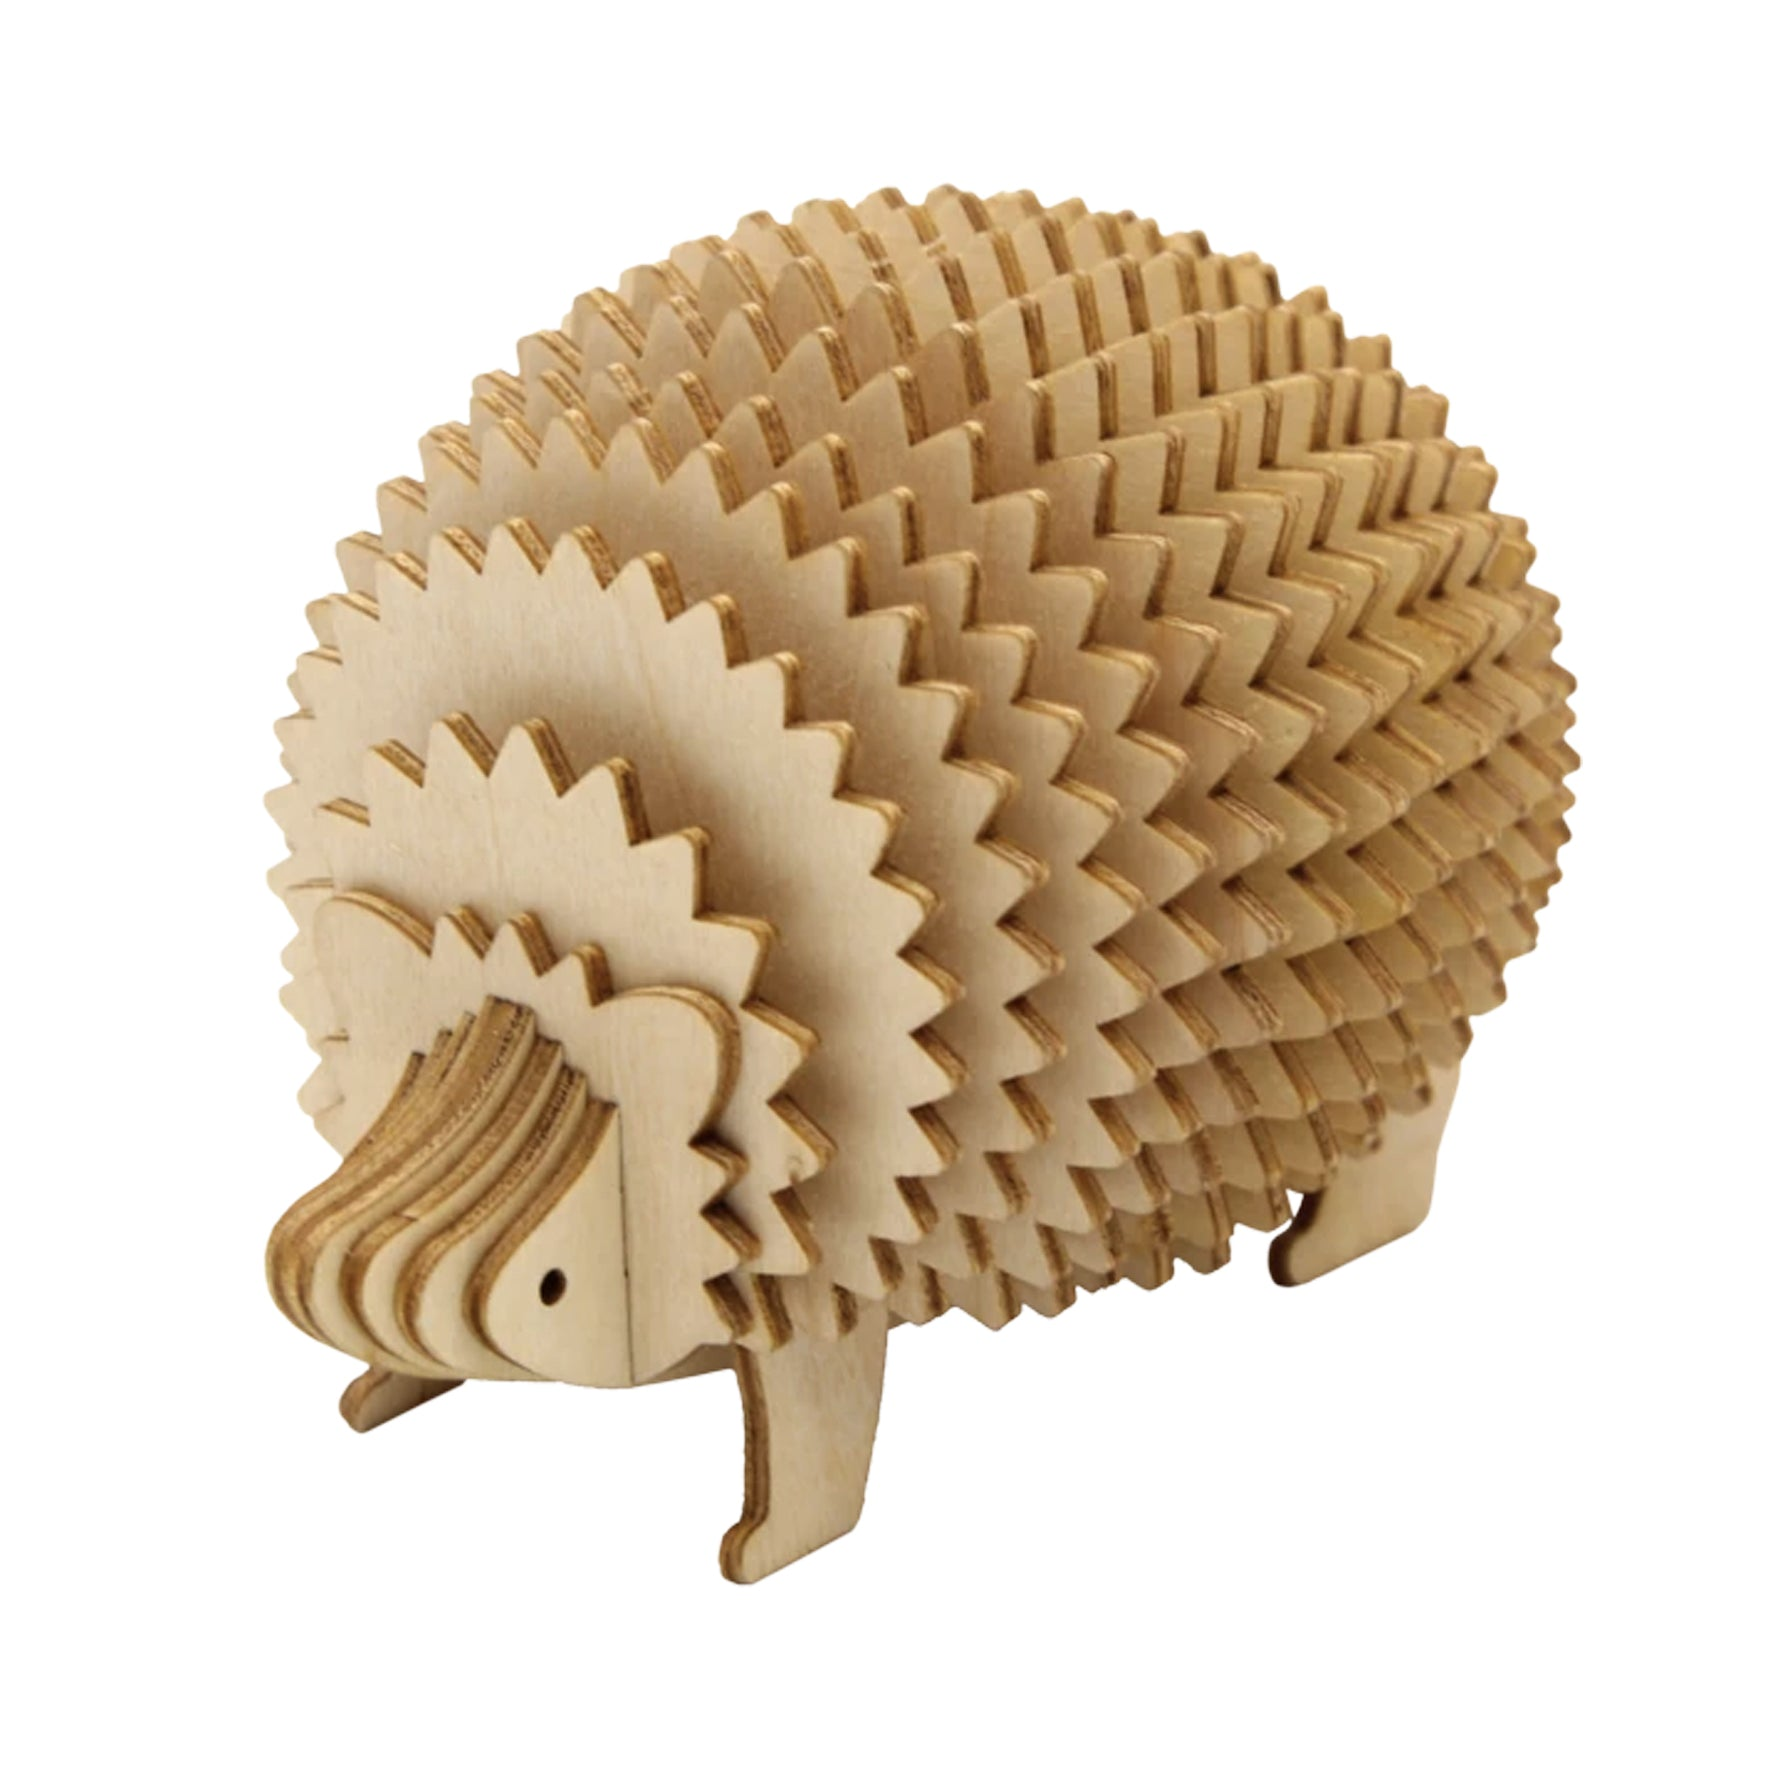 Puzzle 3D madera Jigzle – Hedgegog Memo stand